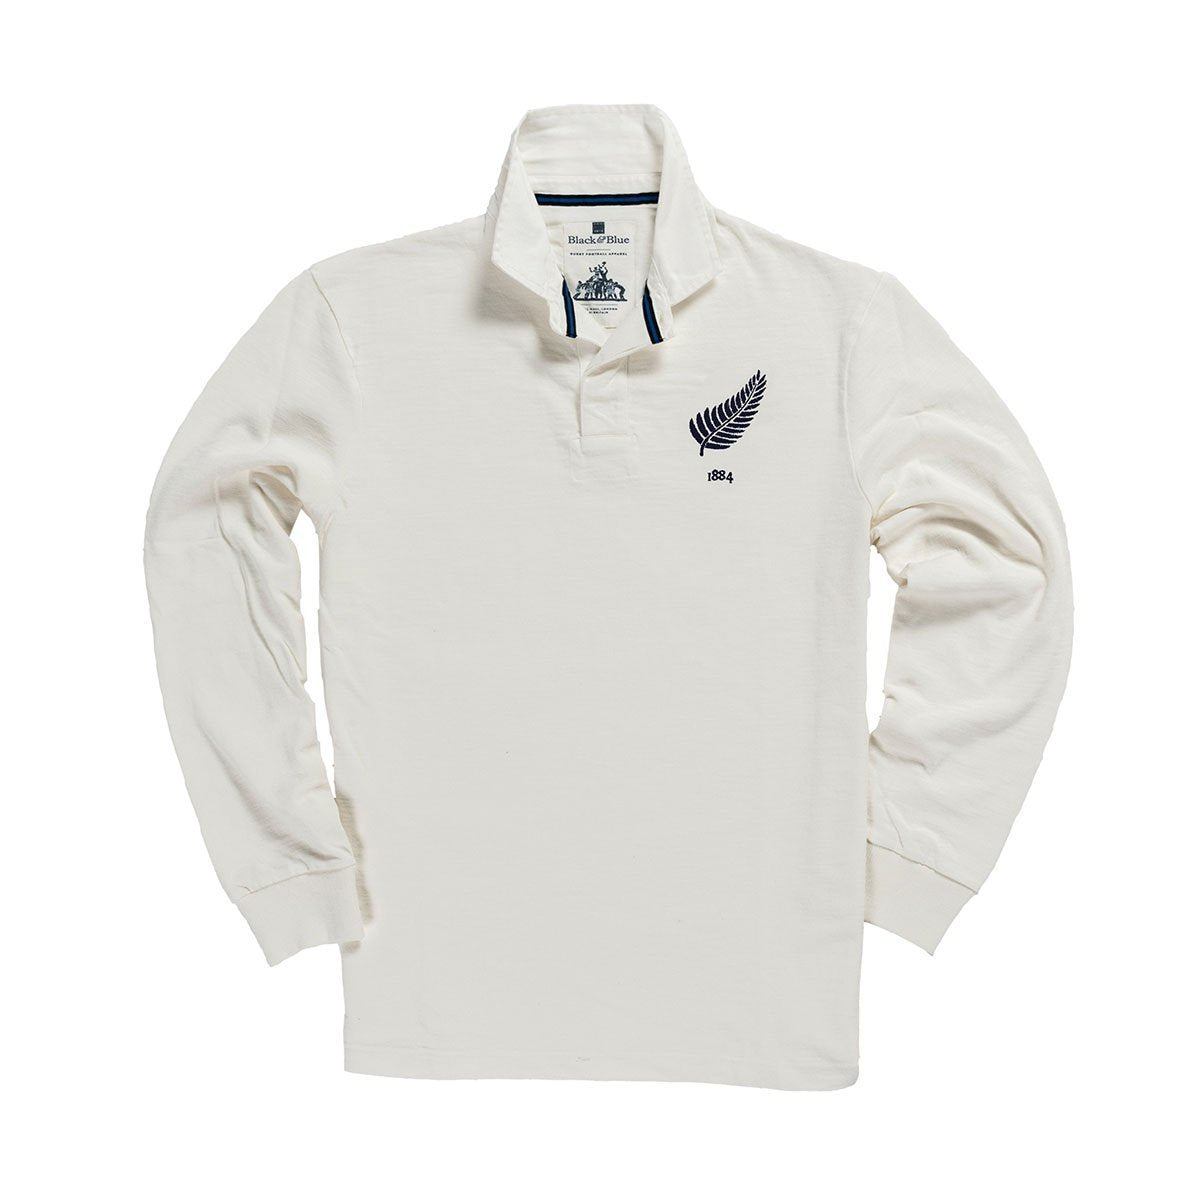 1IN/NZAXS, Black & Blue 1871, New Zealand 1884 Away Rugby Shirt, White, Vintage, Classic Rugby Shirt